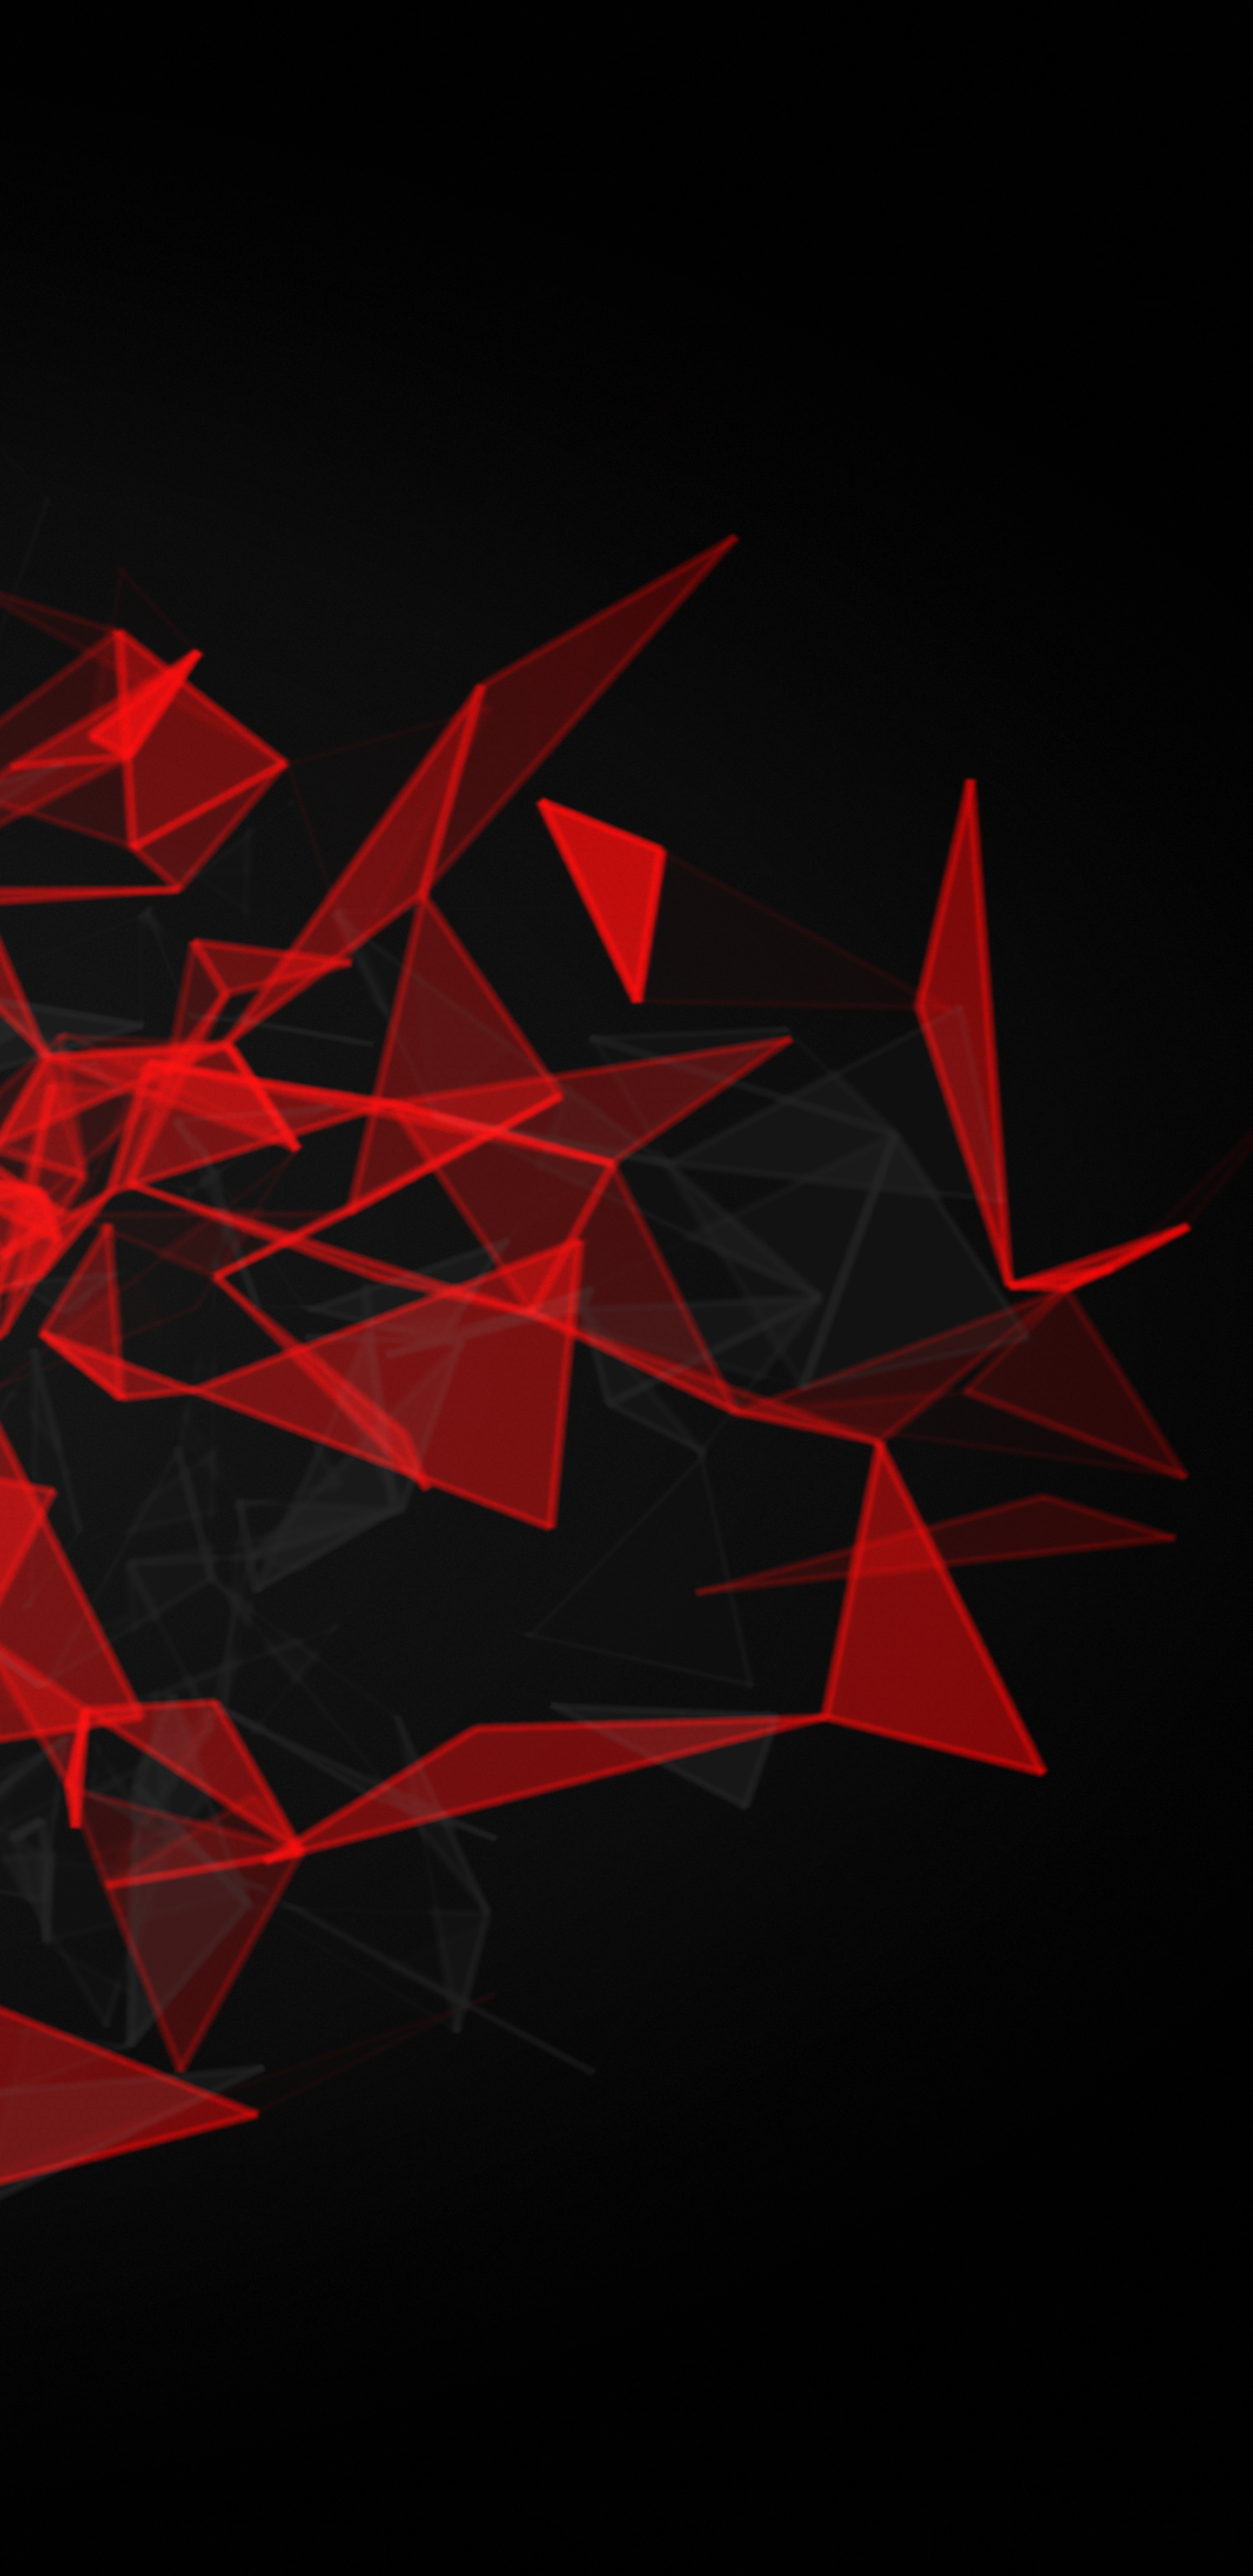 Abstract Red 1440x2960 Wallpaper Id 766377 Mobile Abyss